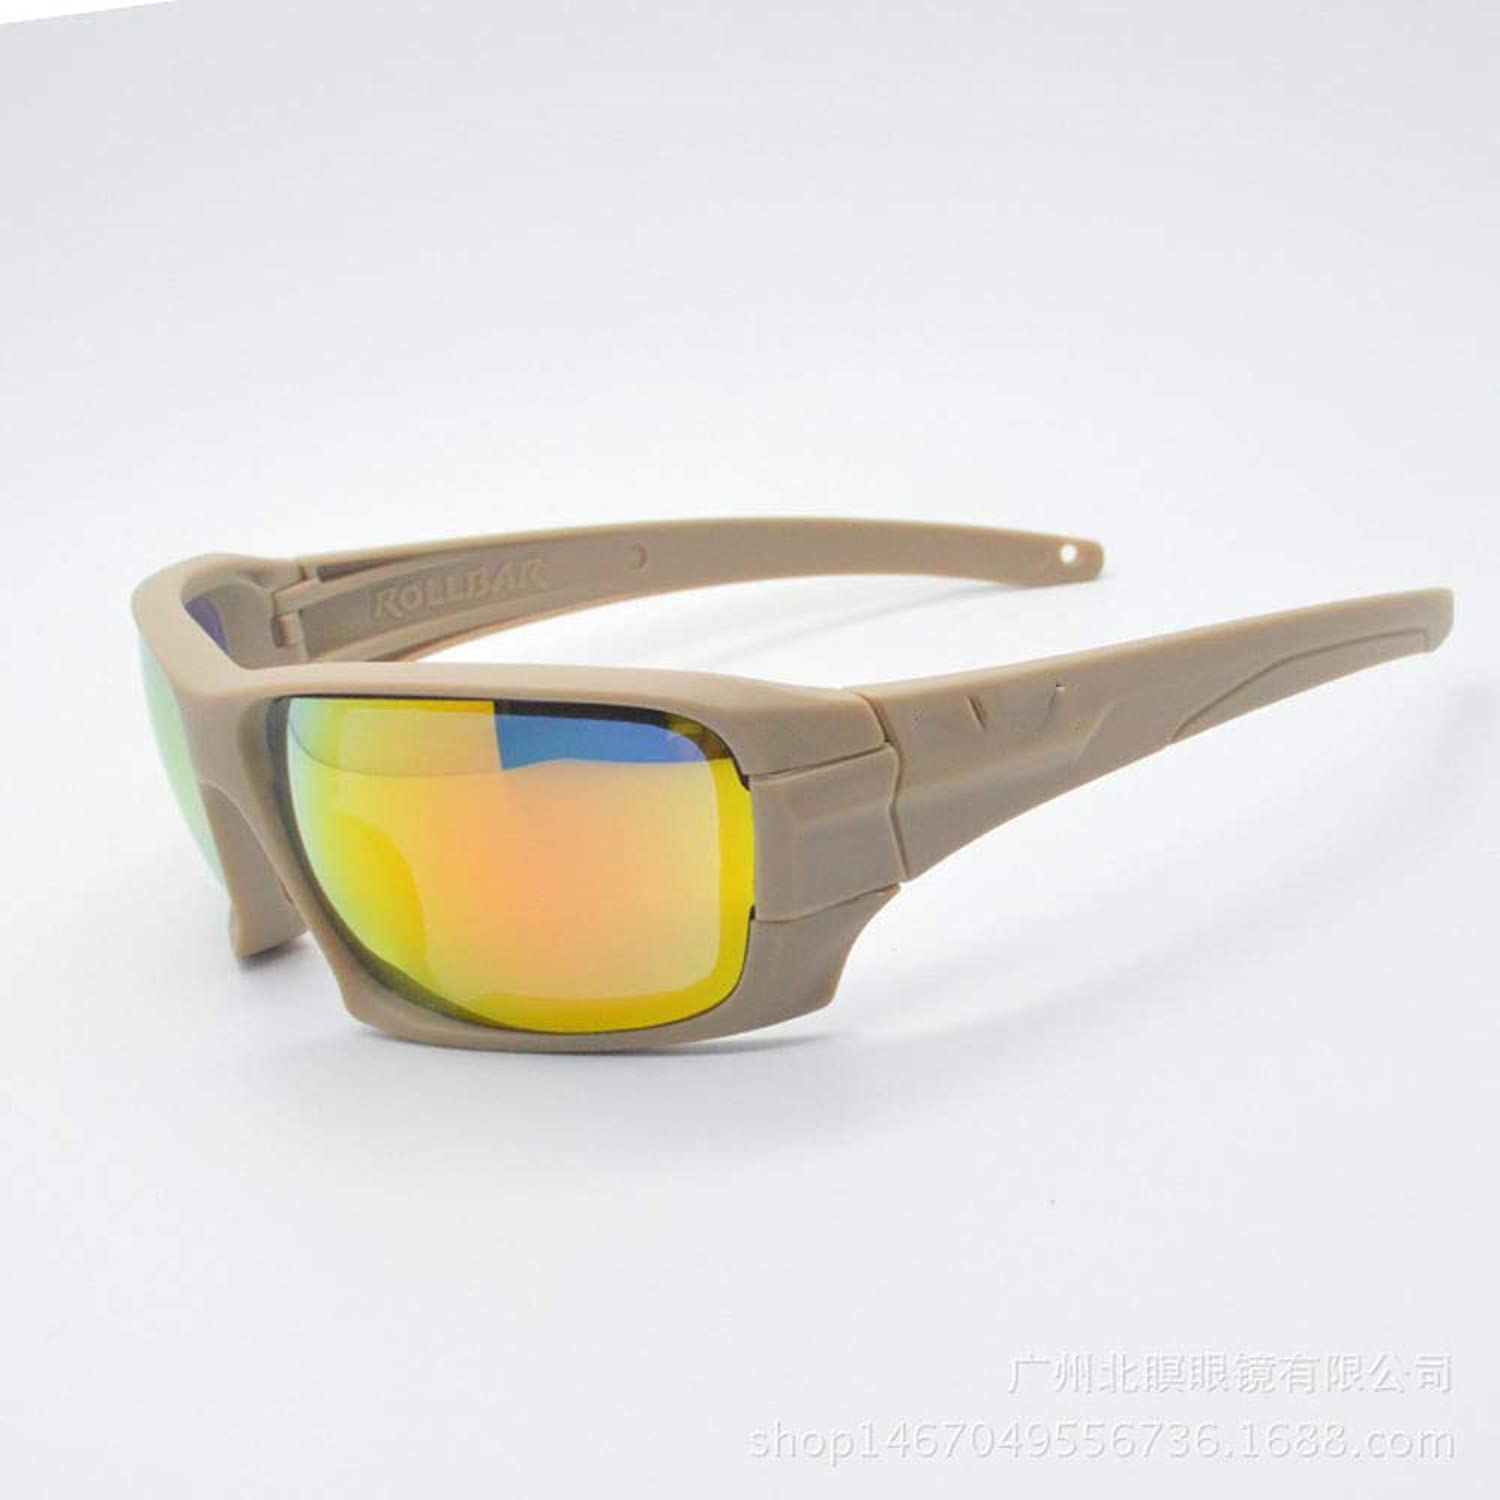 Brand  Otherbr    Material  PCbr    Style  Sportsbr    Spec.  Generalbr    Style  Full framebr    Type  Polarizing Glassesbr    Specification  Unisexbr    Glasses Category  Can be changed glasses, with head with glassesbr    Frame color  black, kh